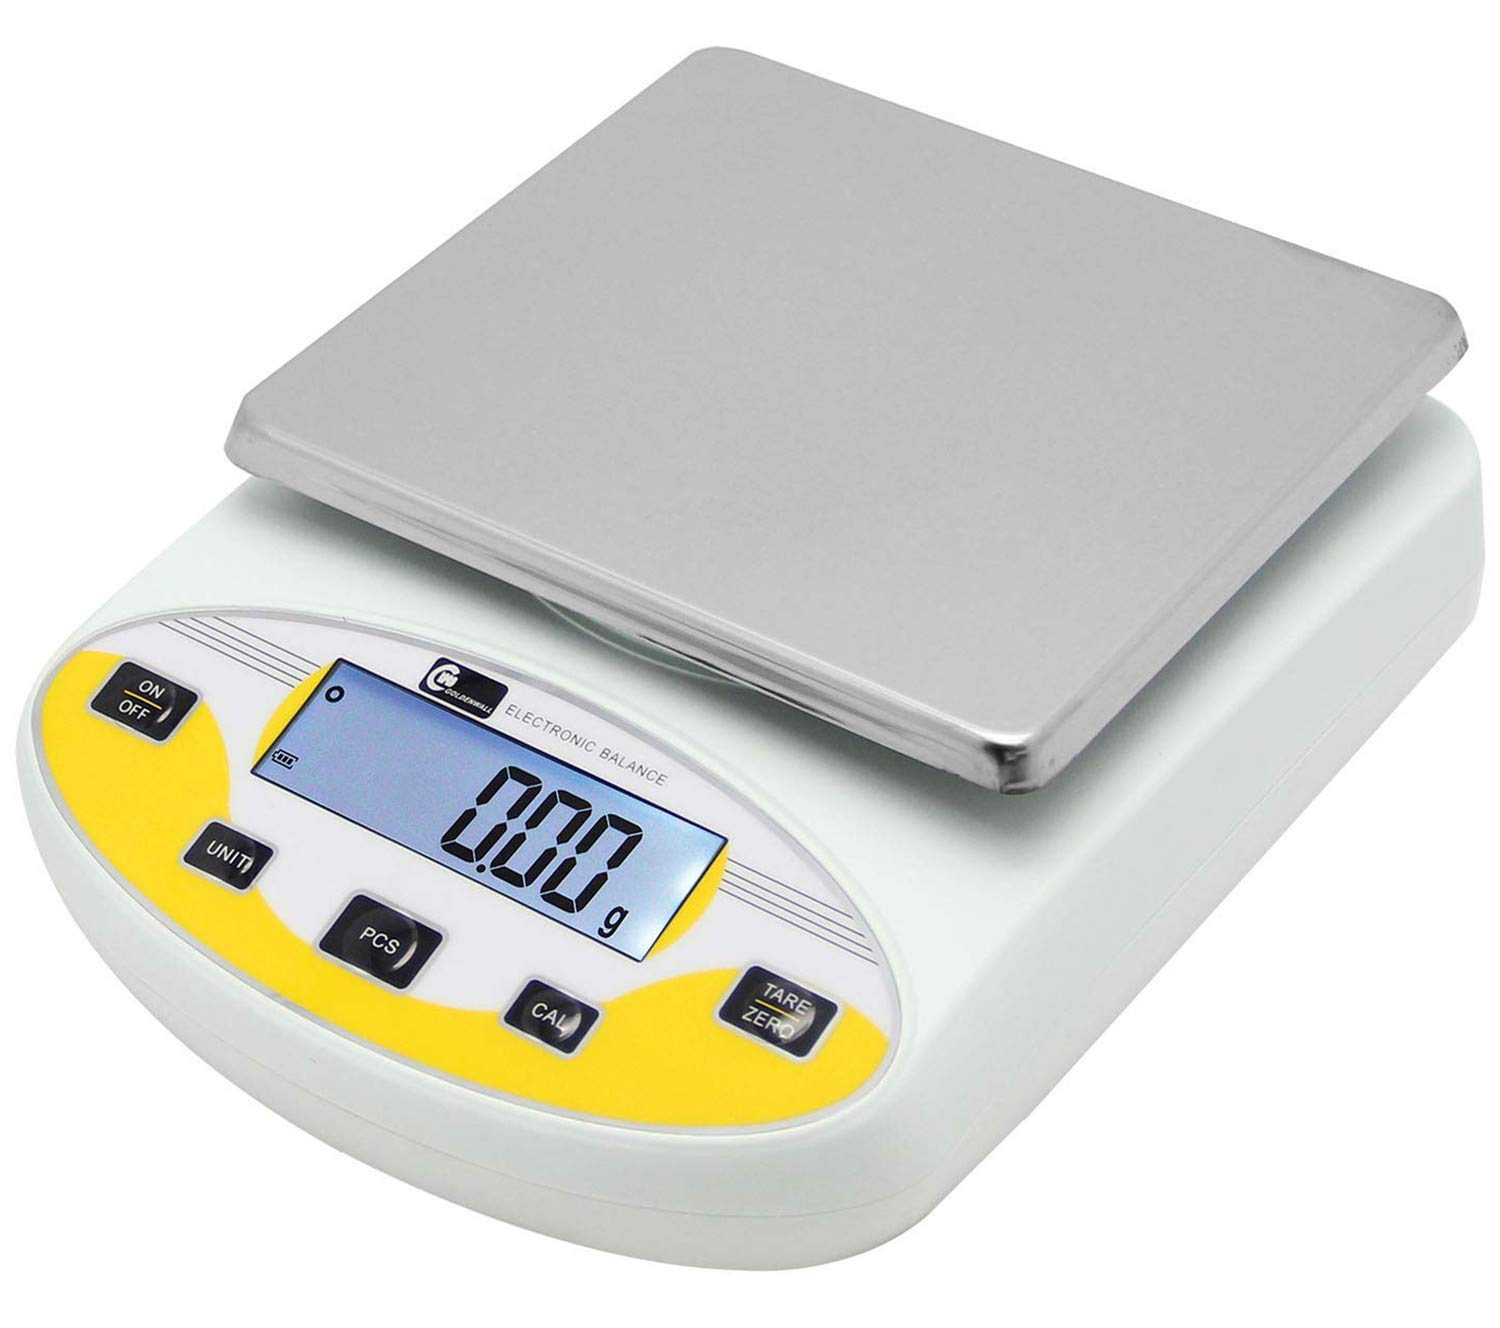 CGOLDENWALL High Precision Lab Digital Scale Analytical Electronic Balance Laboratory Lab Scale Precision Jewelry Scales Kitchen Precision Weighing Electronic Scales 0.01g Calibrated (5000g, 0.01g) by CGOLDENWALL